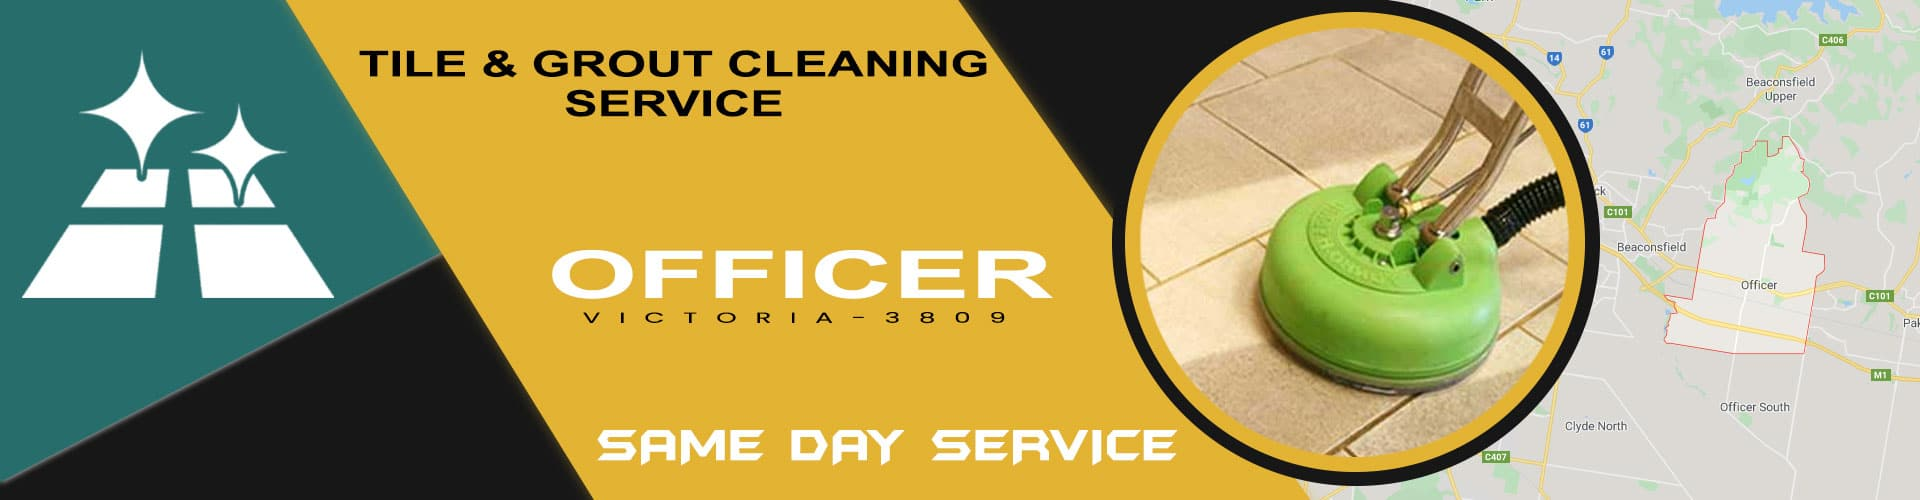 Tile & Grout Cleaning Officer